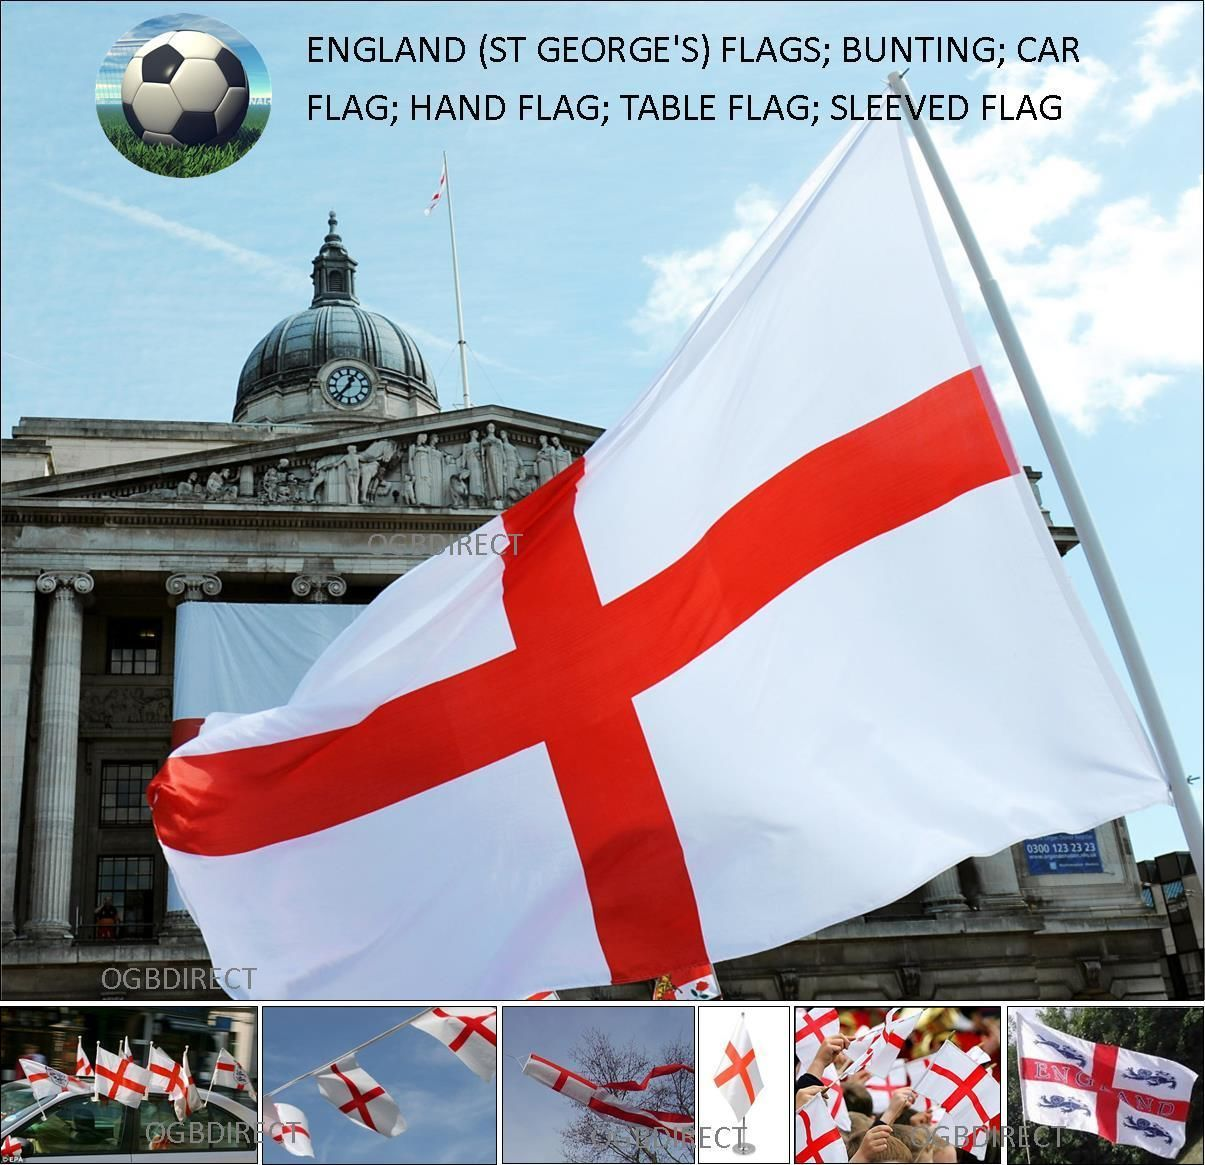 St George Car Flag England F.A